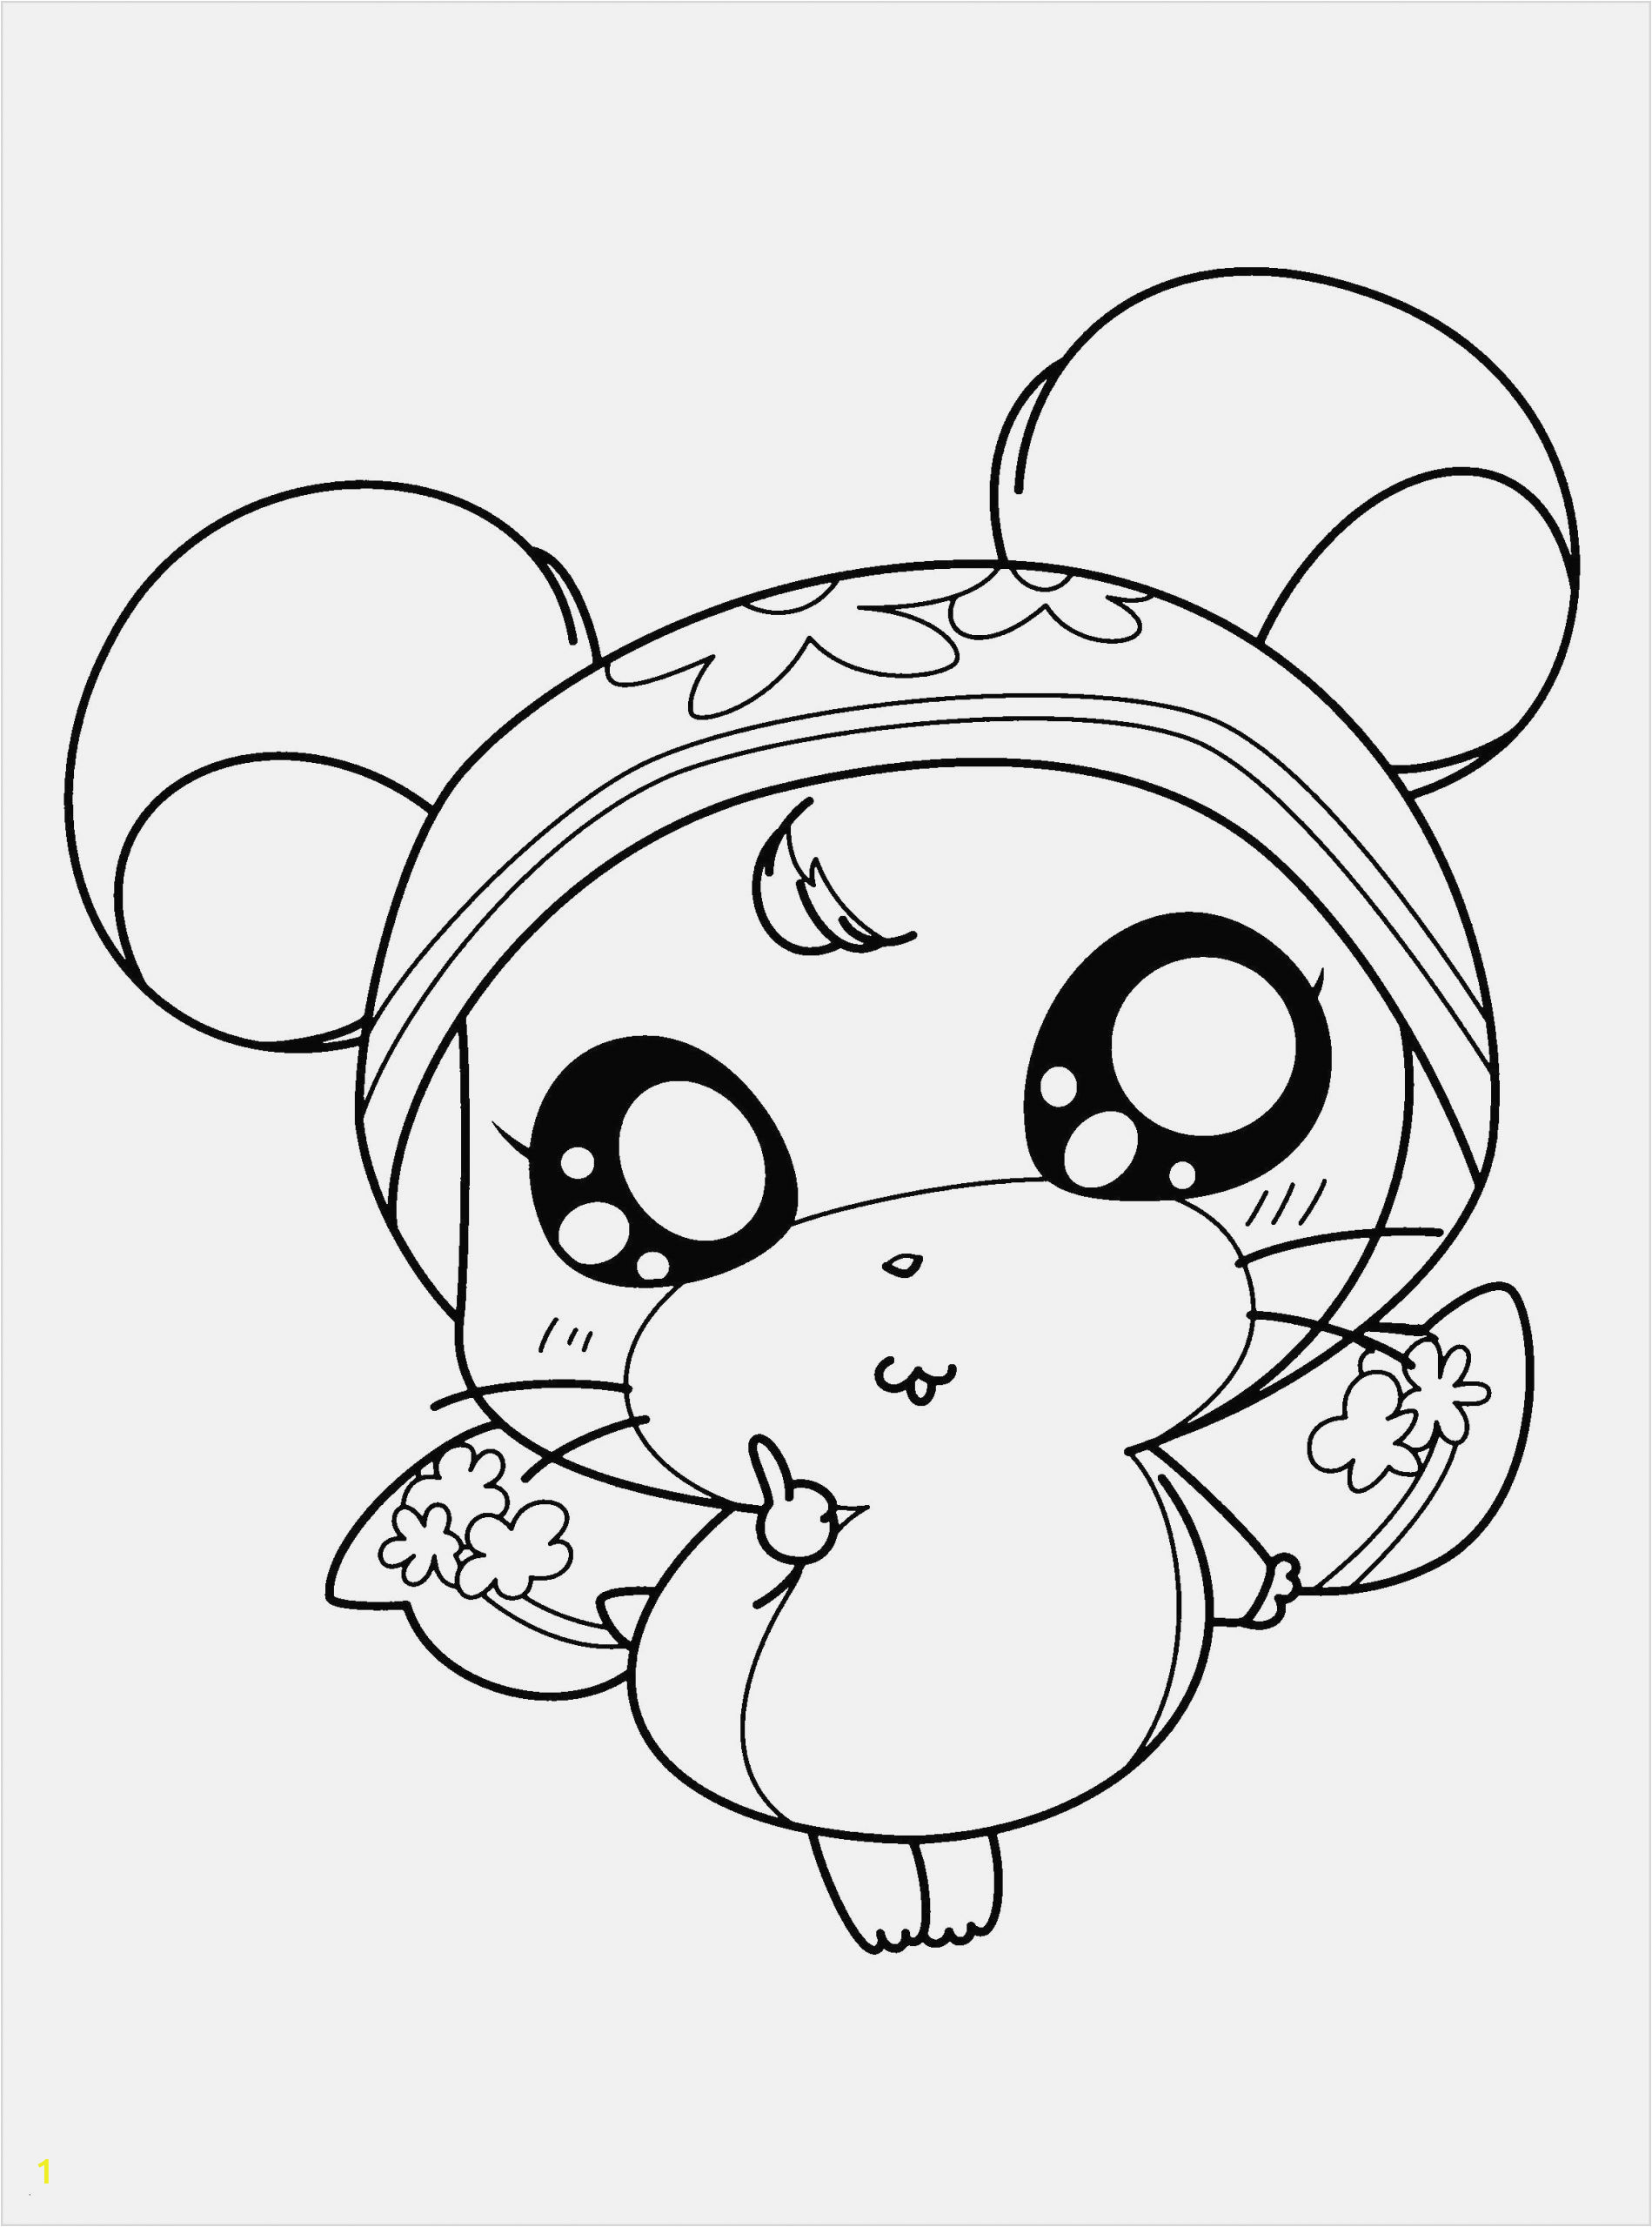 elephant cartoon coloring unique valentines day coloring pages free printables at of elephant cartoon coloring